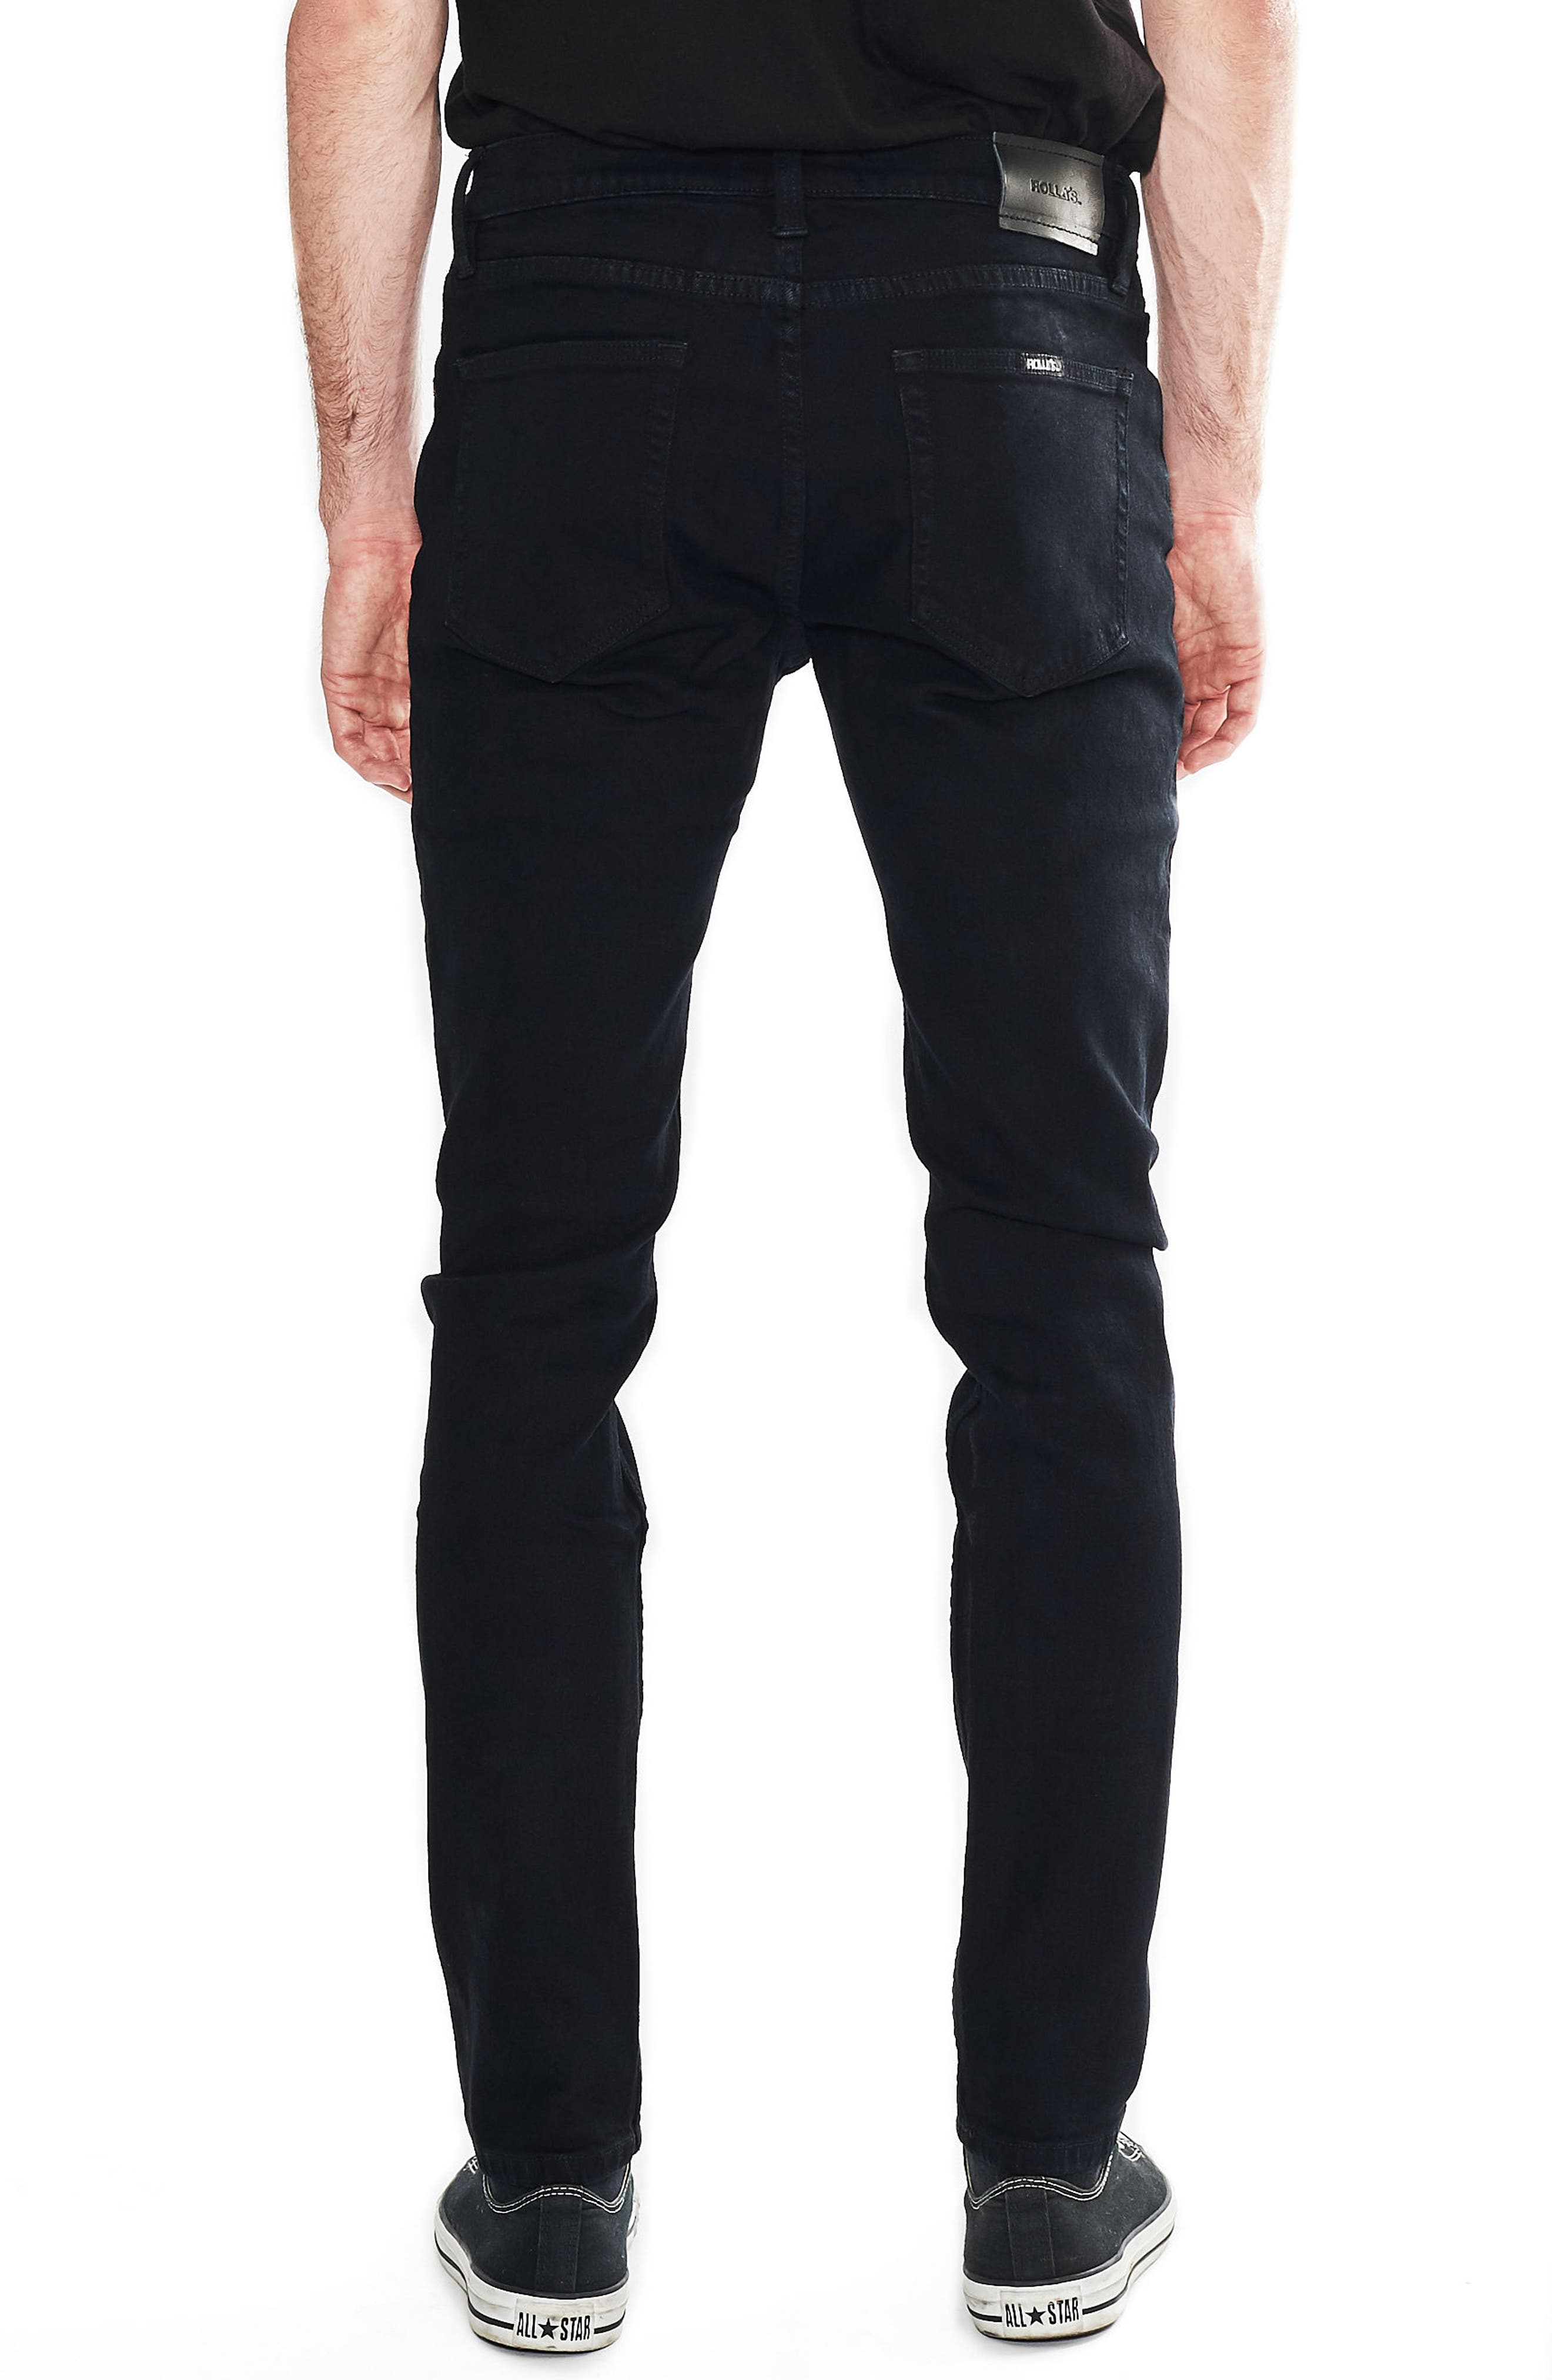 Thin Captain Slim Fit Jeans,                             Alternate thumbnail 2, color,                             Bon Black